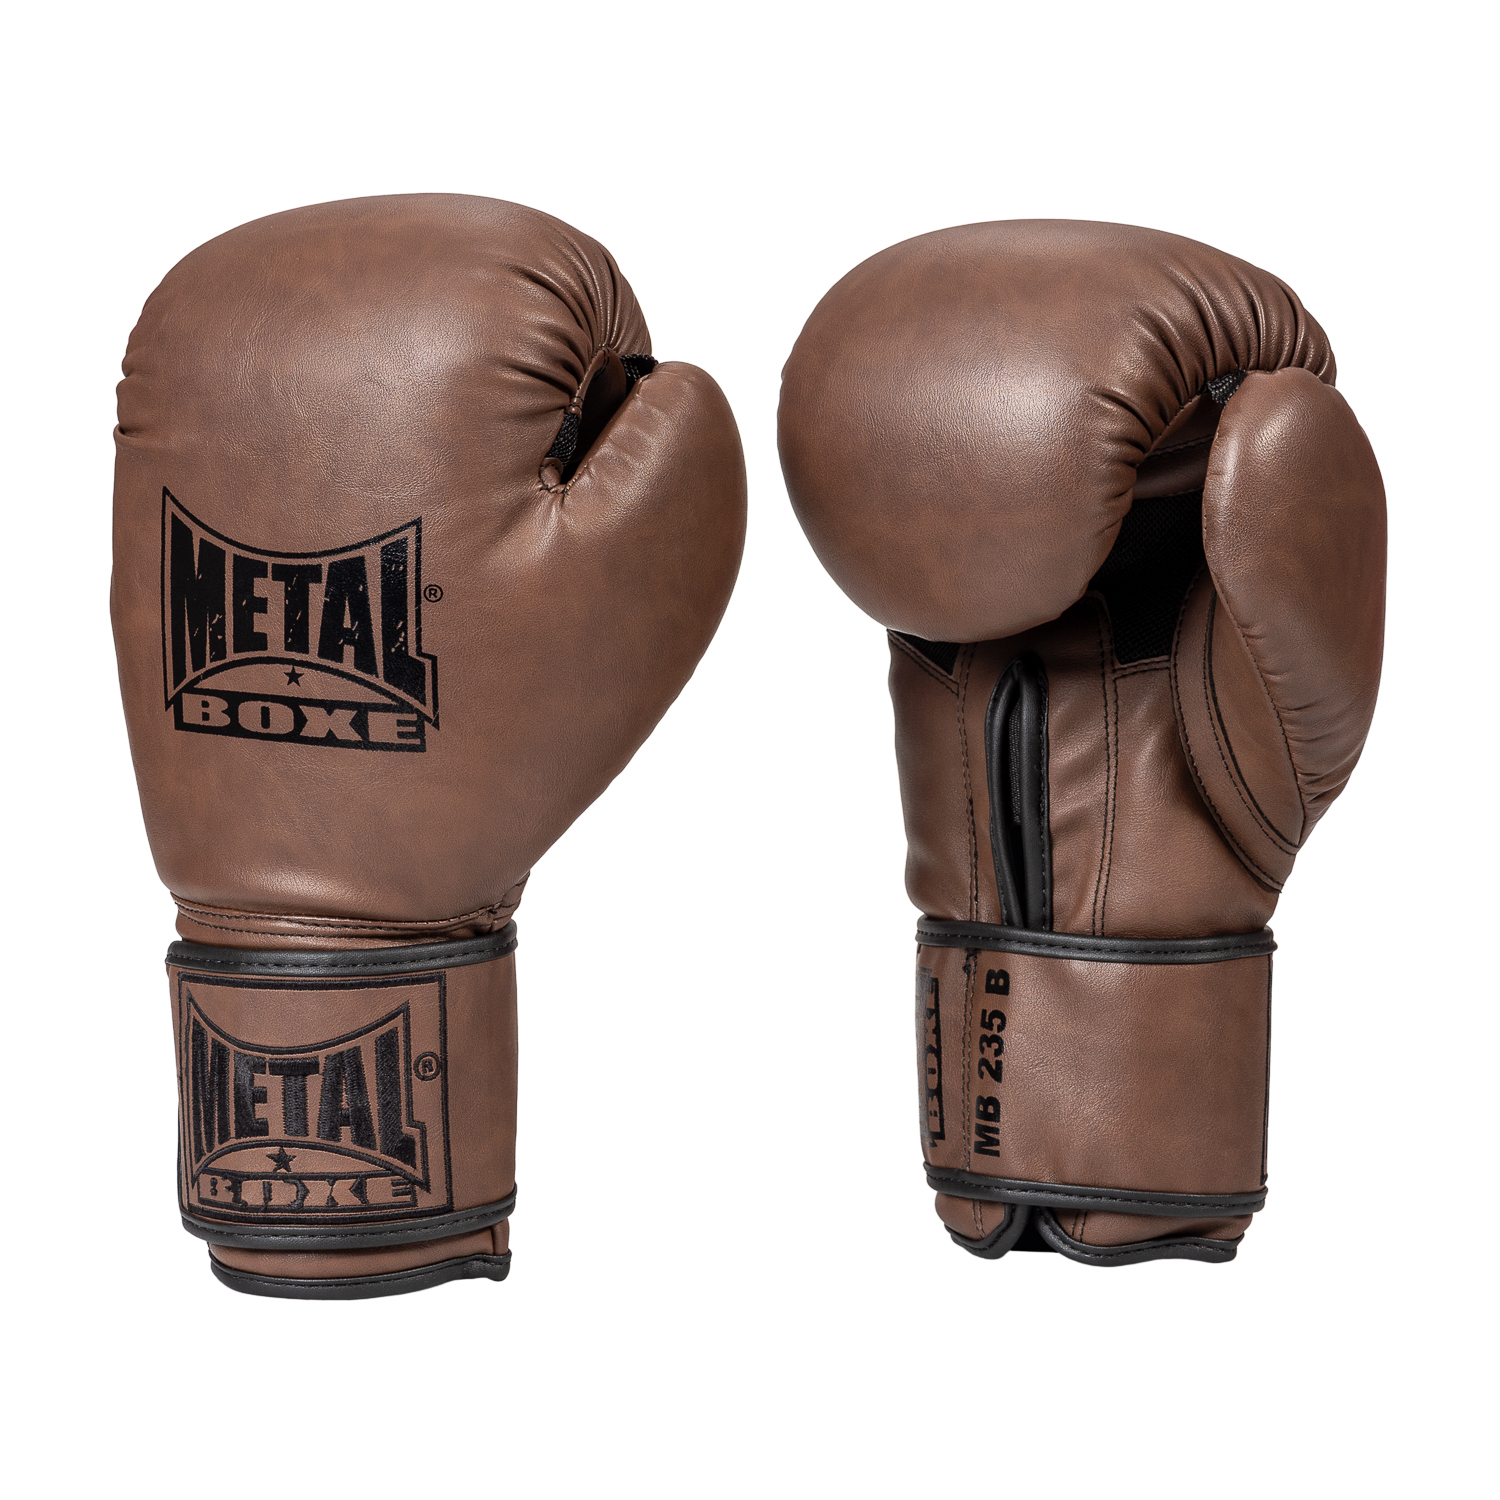 gant_boxe_metal_boxe_marron_mb235